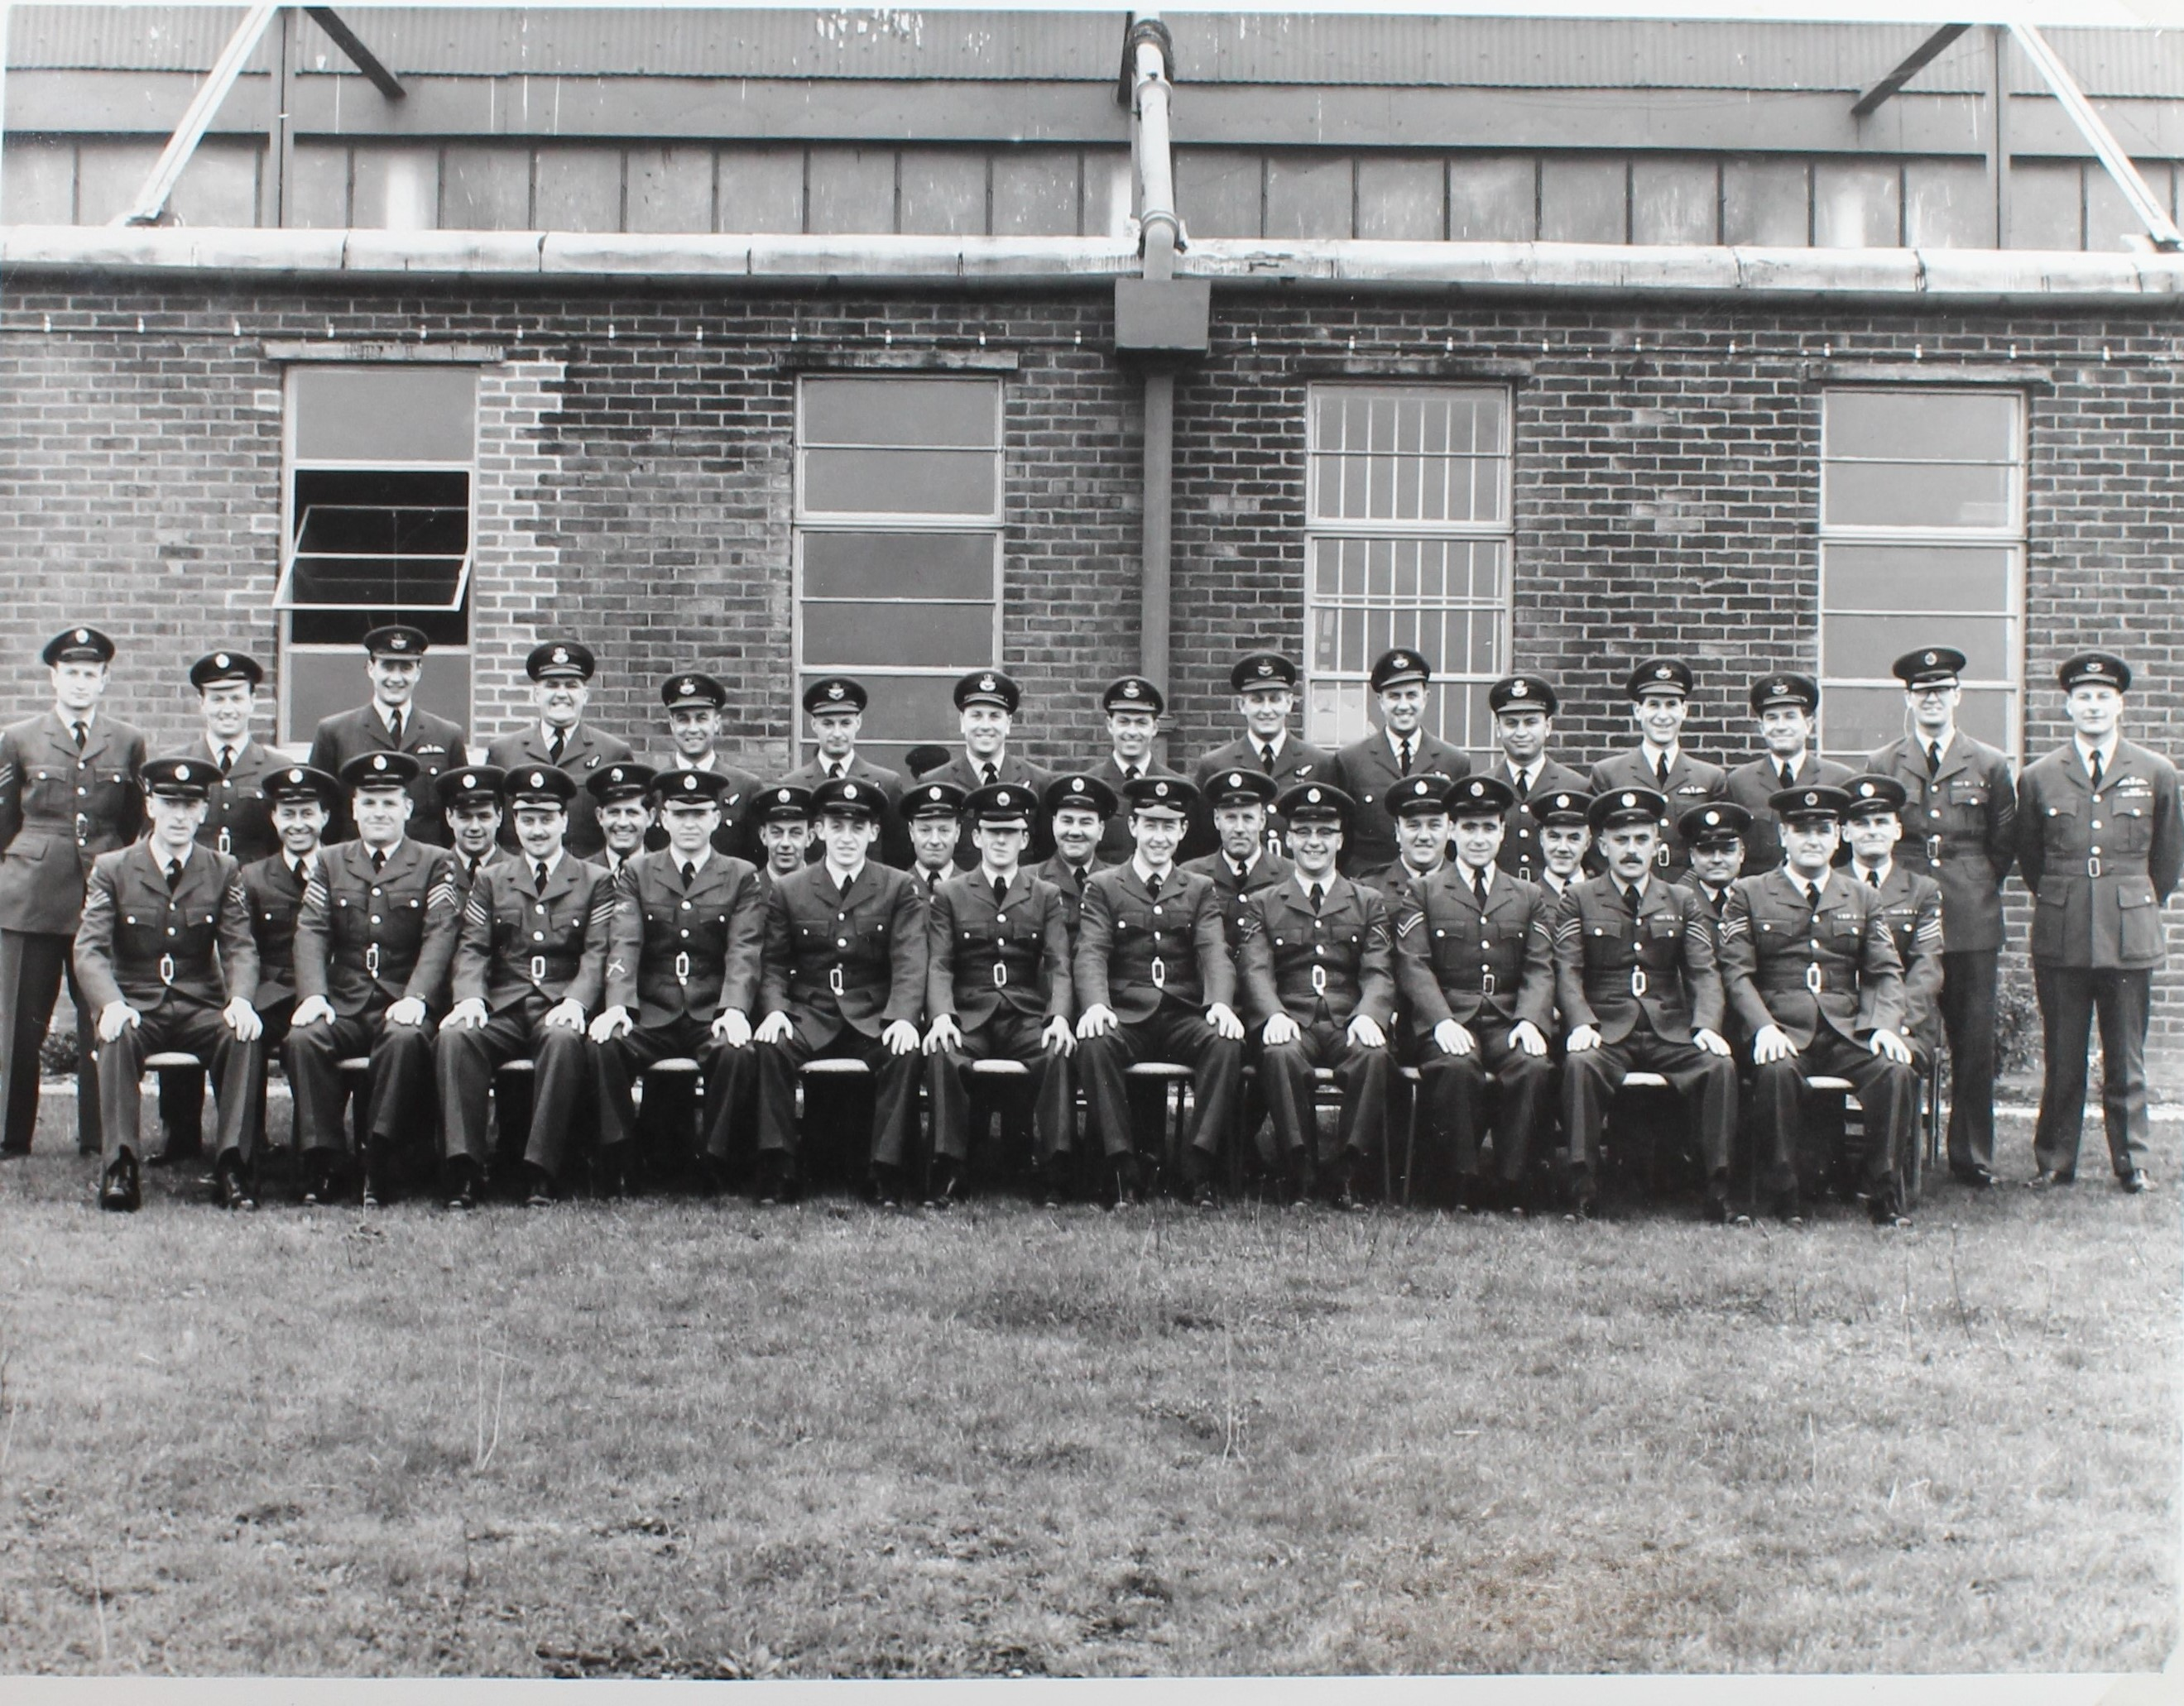 The squadron reforms at Coningsby 1962 [Courtesy of Marham Aviation Heritage Centre]